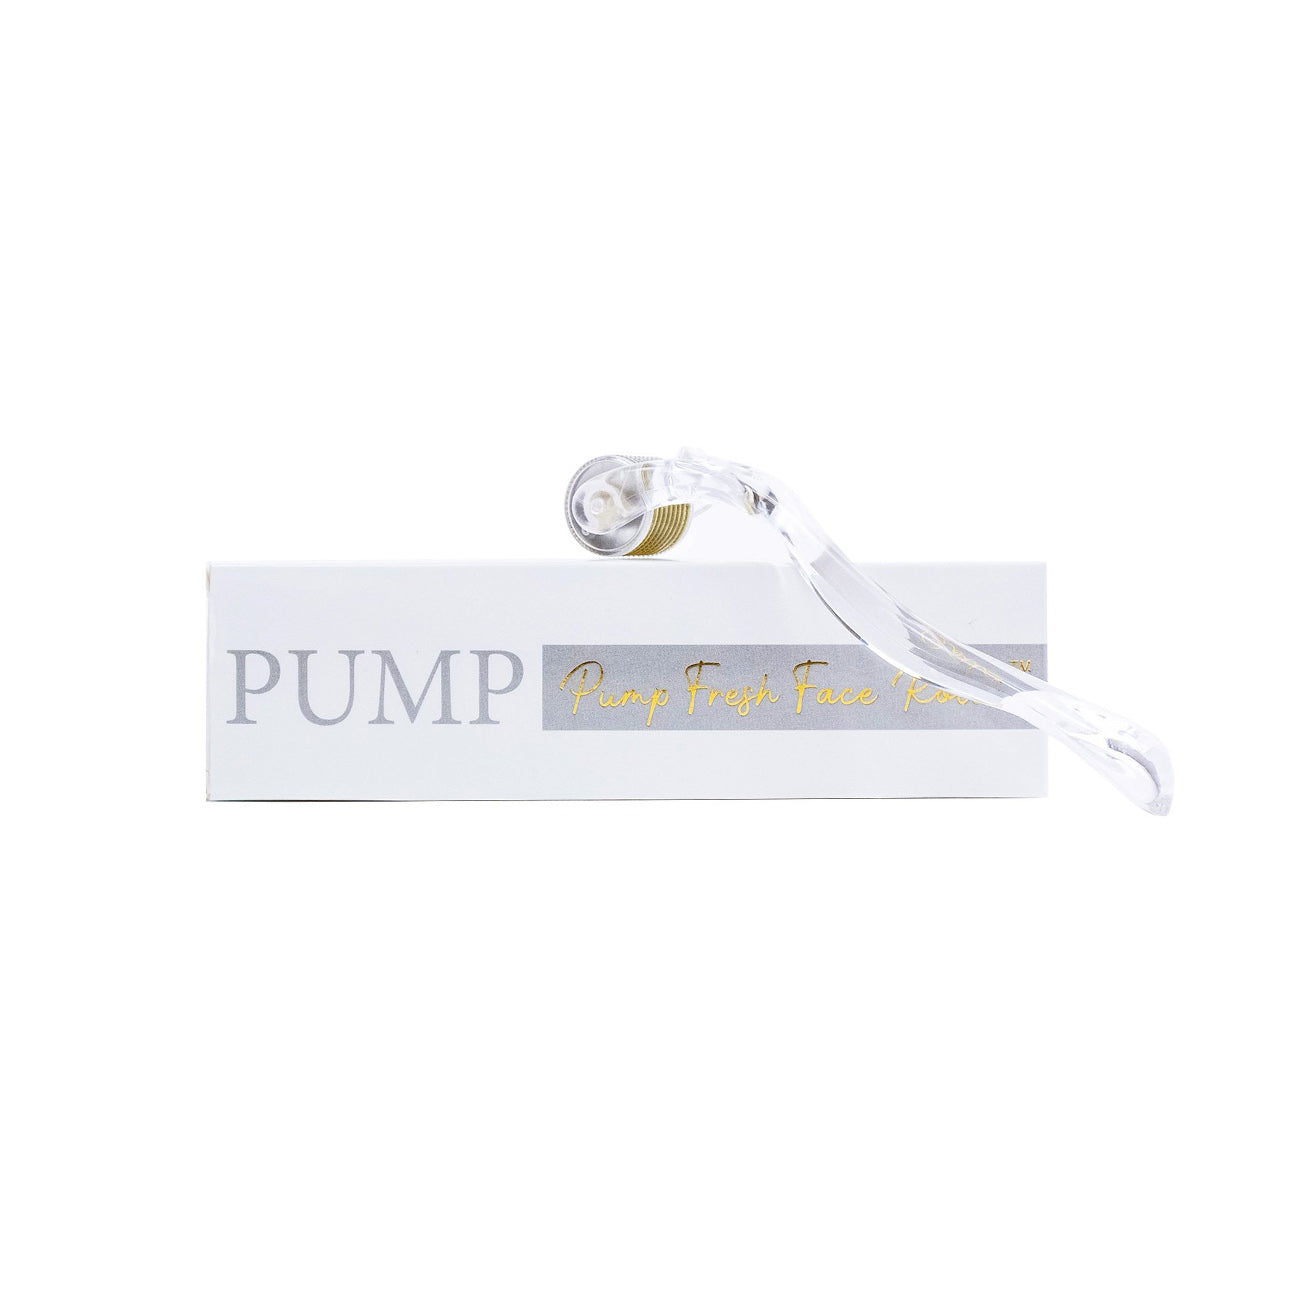 Pump Fresh Face Roller